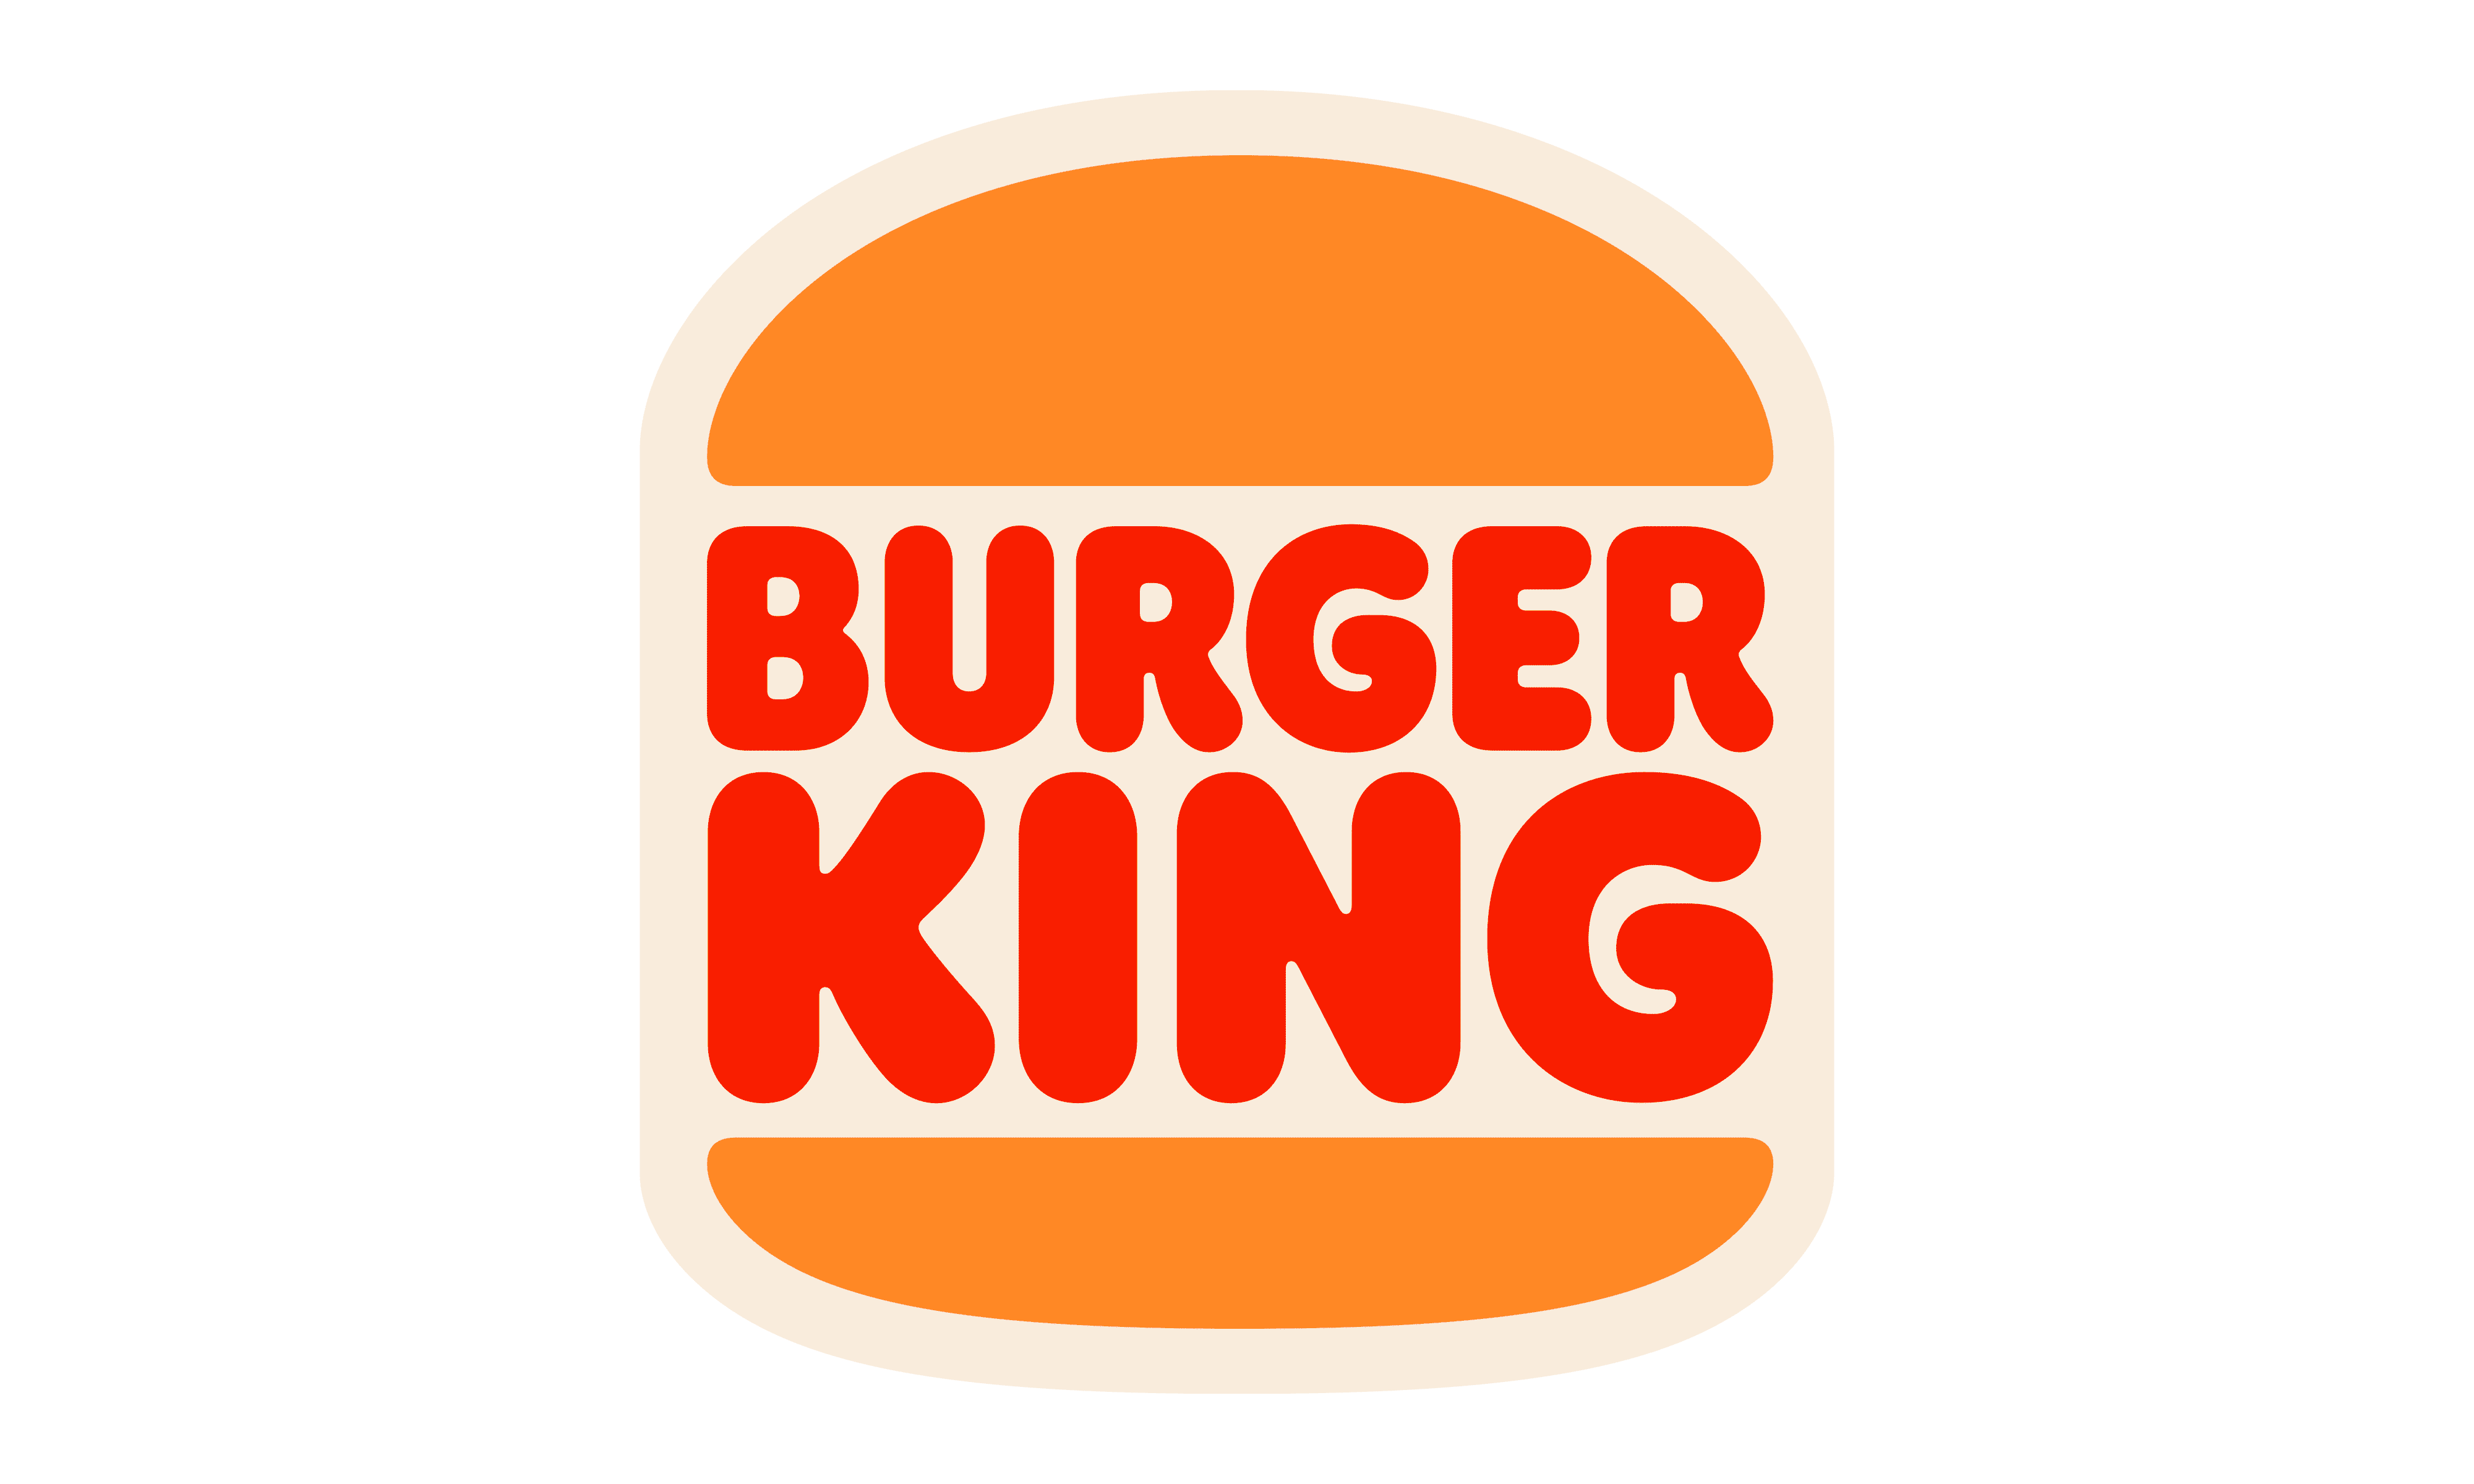 Burger King logo and symbol, meaning, history, PNG